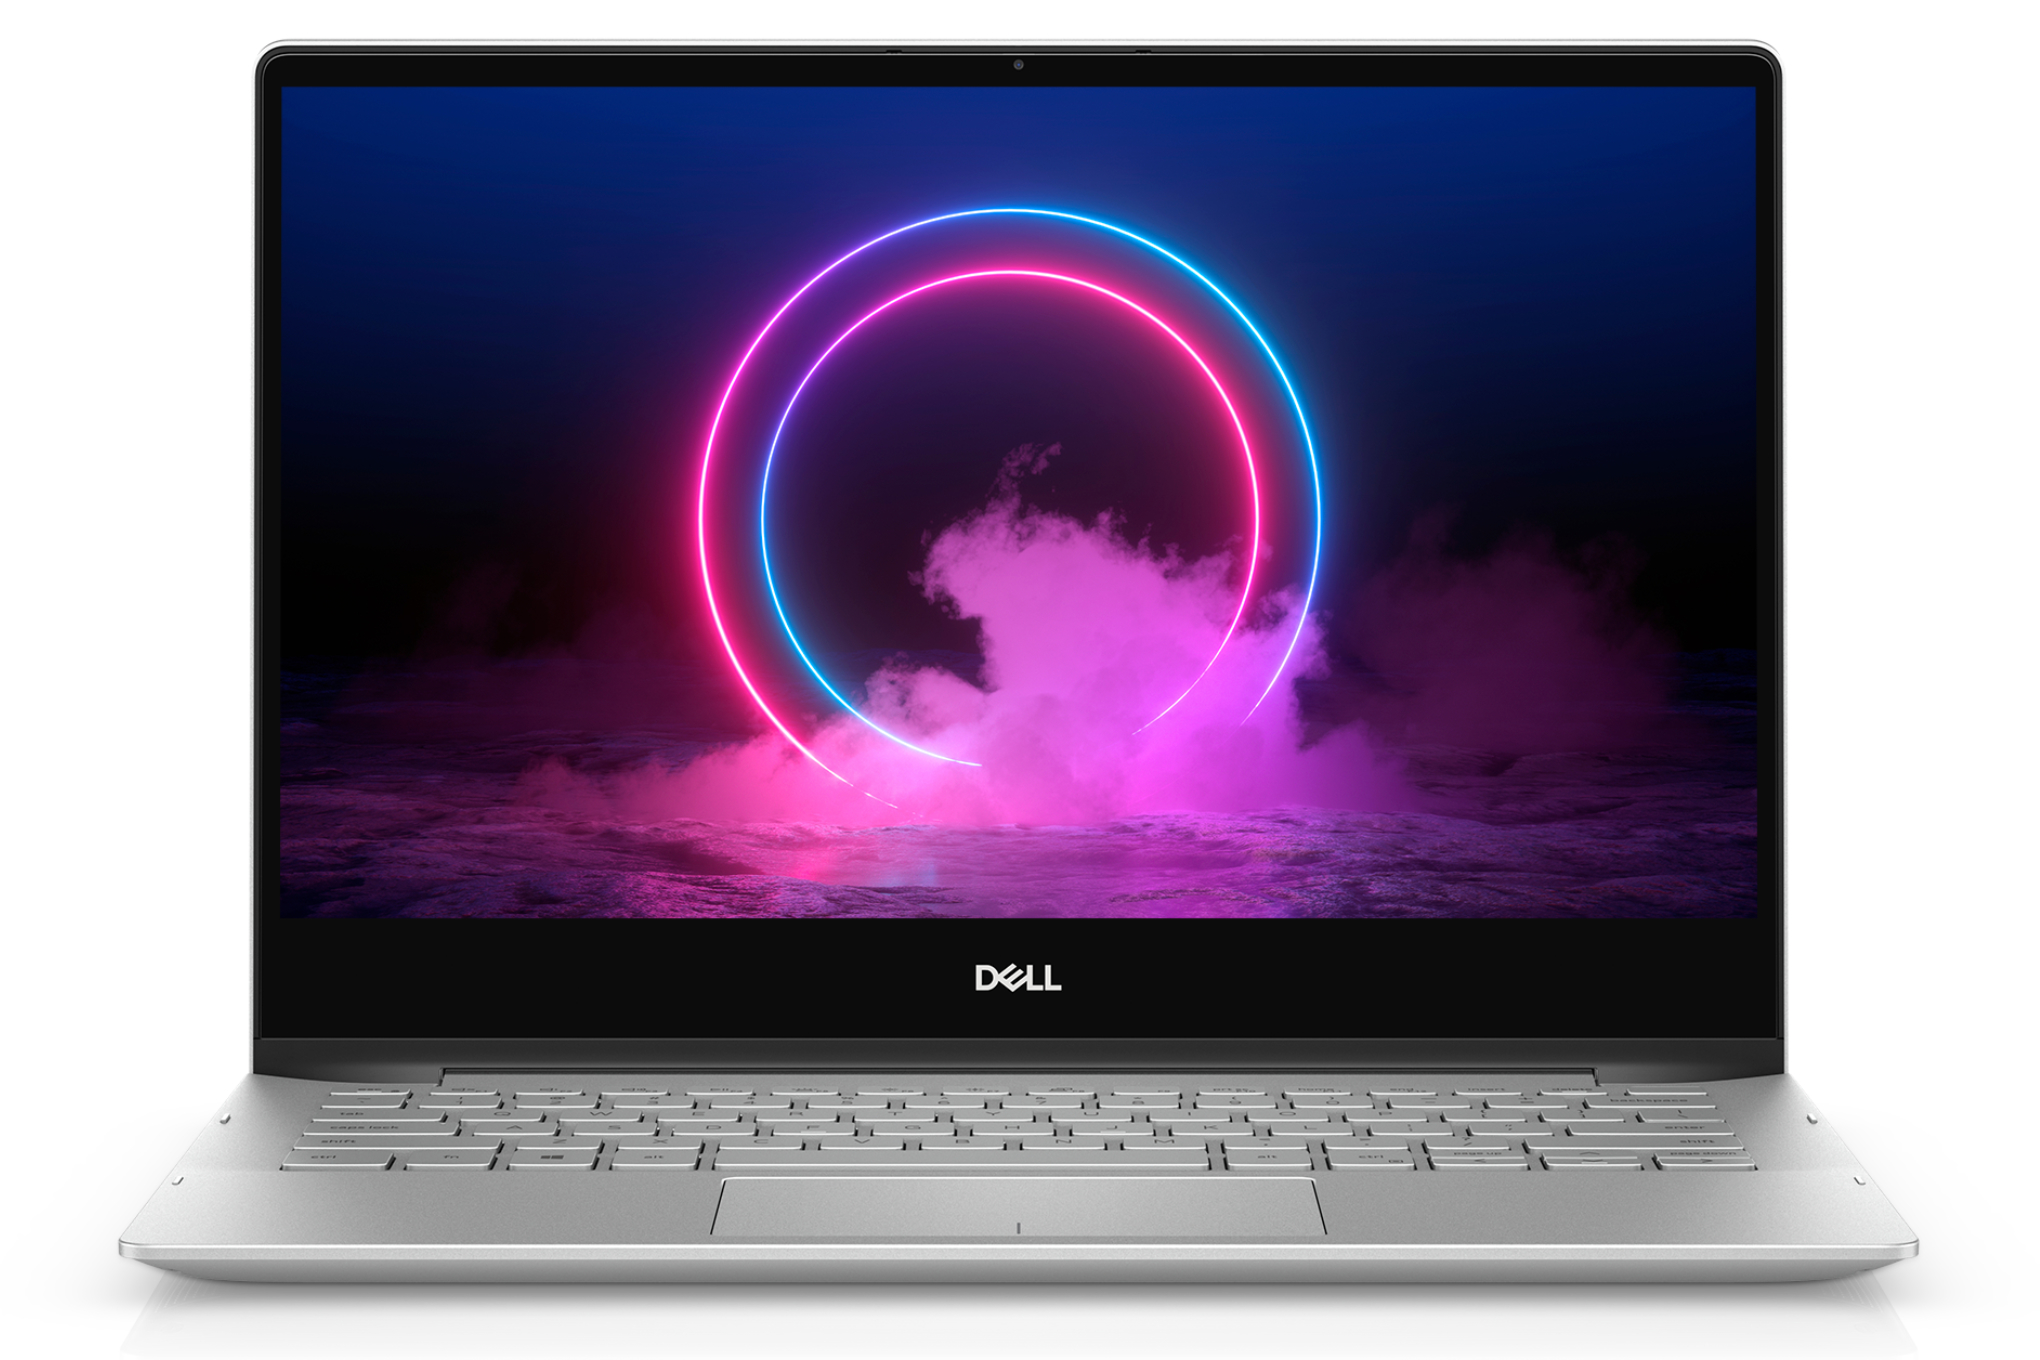 Dell's latest XPS 13 features Intel's Comet Lake 10th Gen